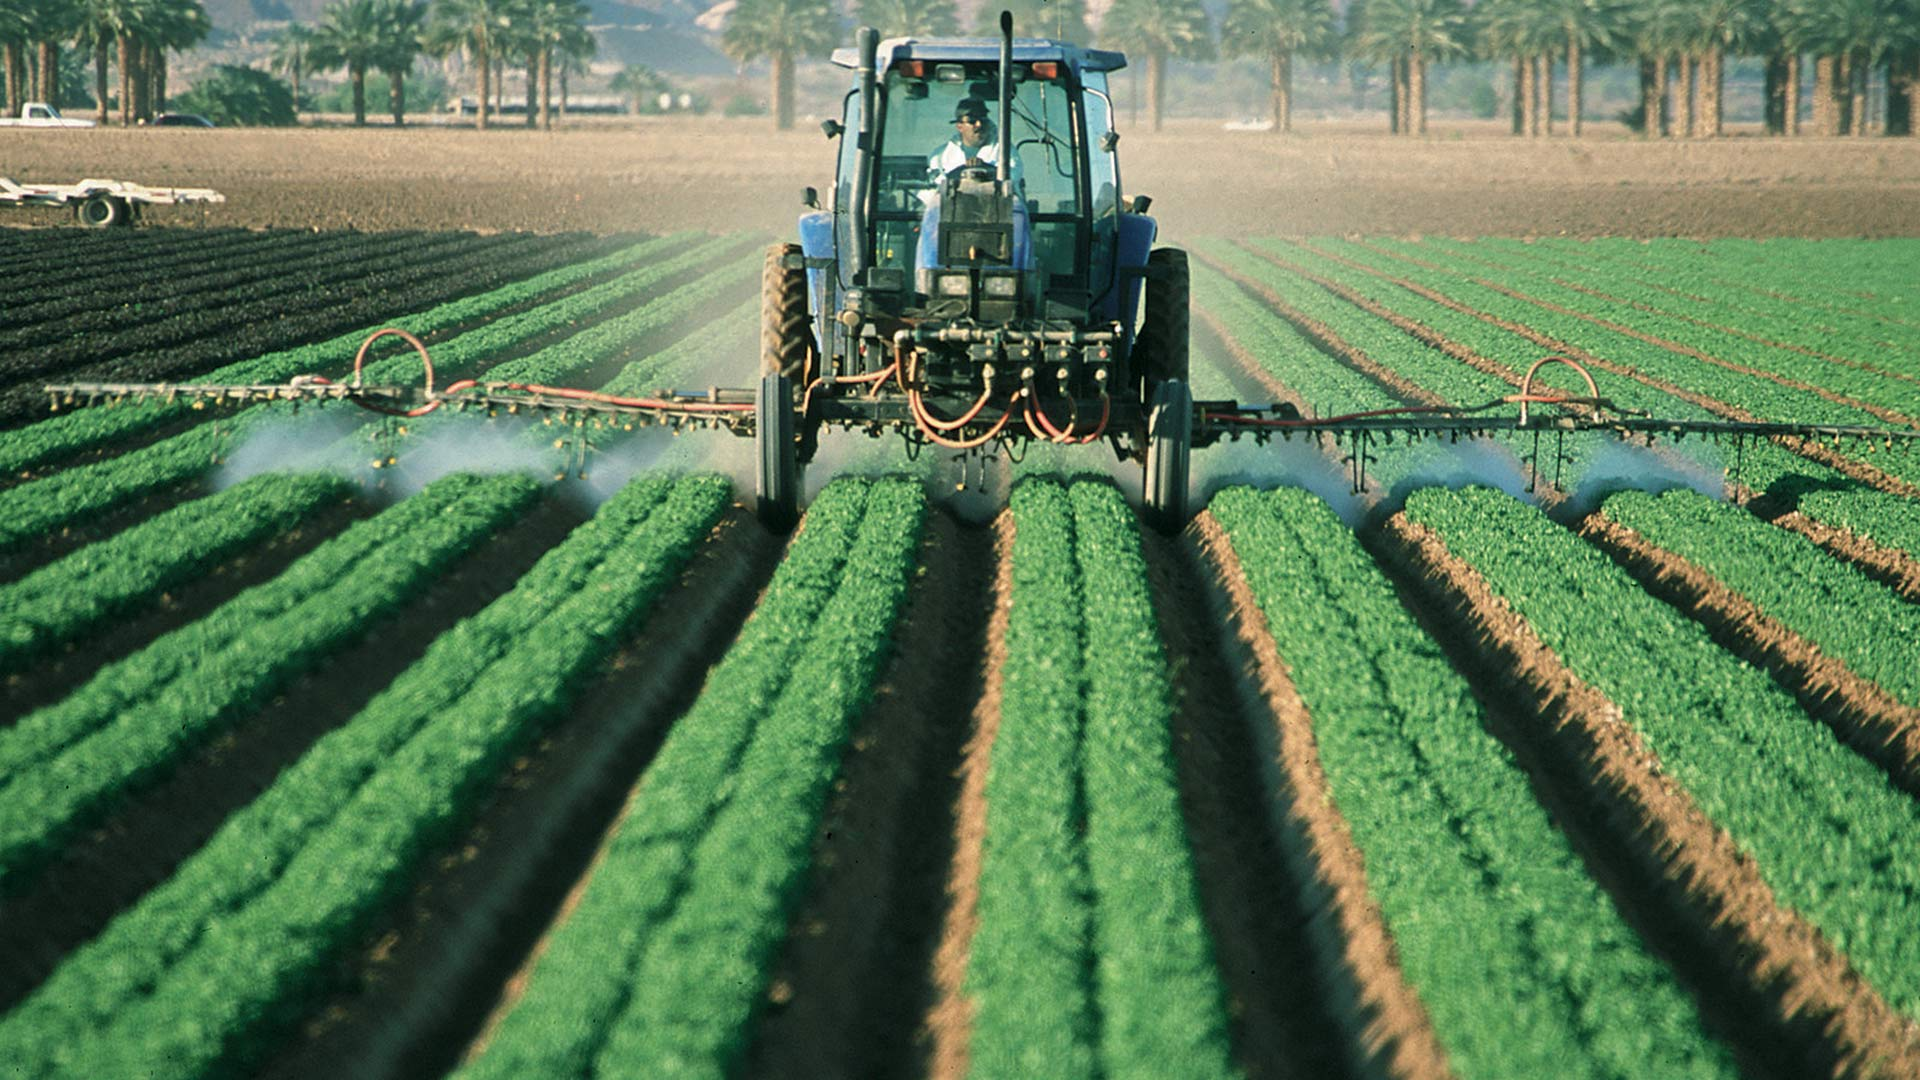 Romaine lettuce field in Arizona. Lettuce is the state's top cash crop, according to the UA Cooperative Extension.